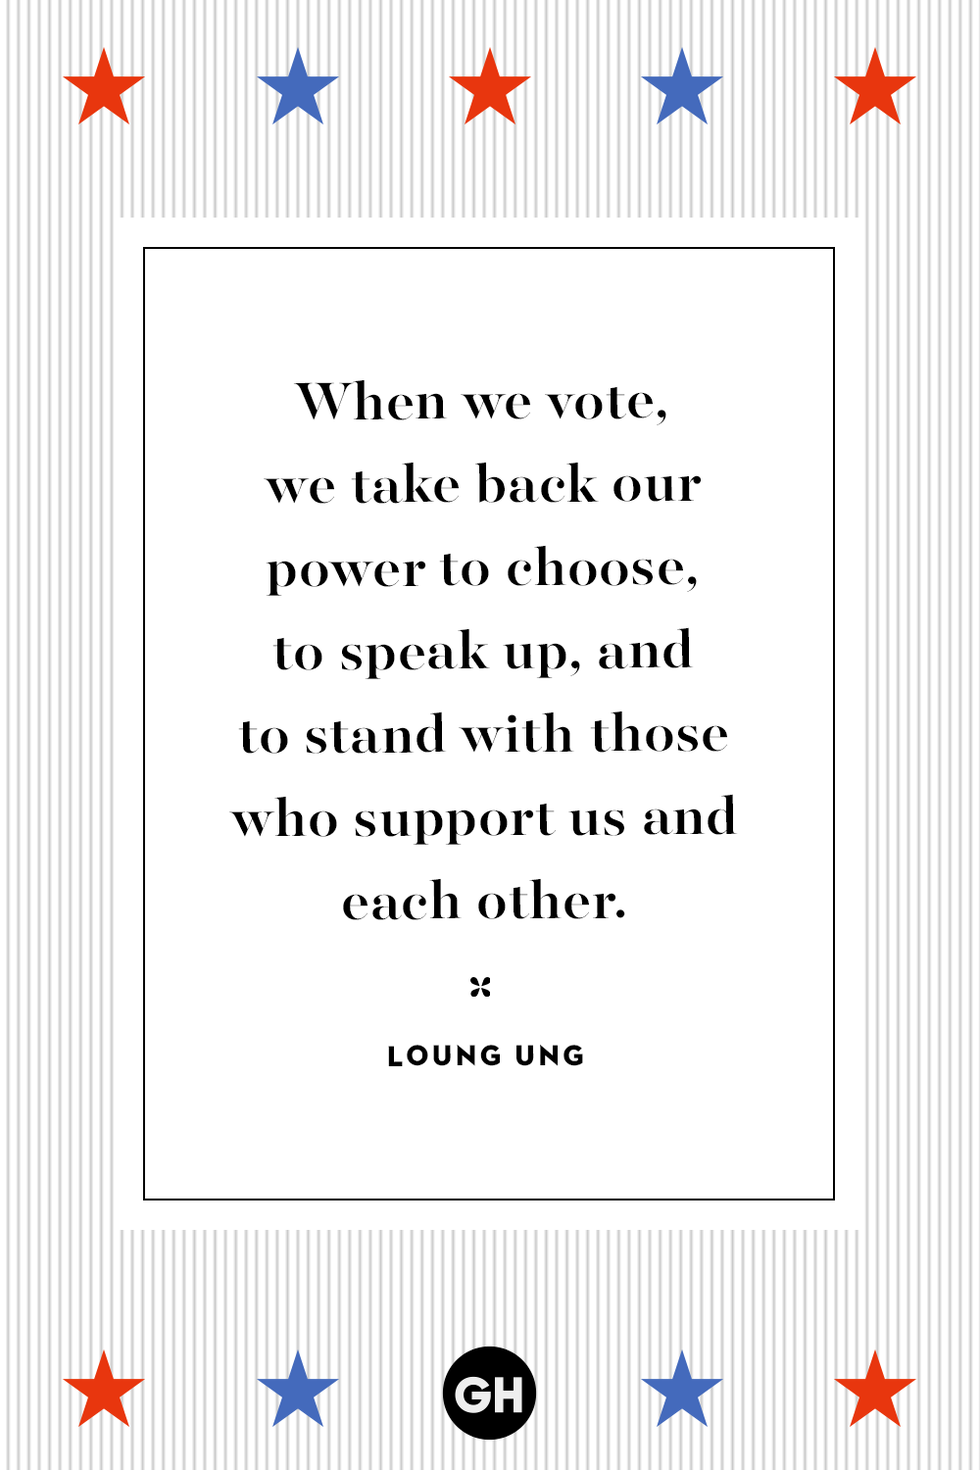 election-quotes-voting-quotes-11-loung-ung-1567019363